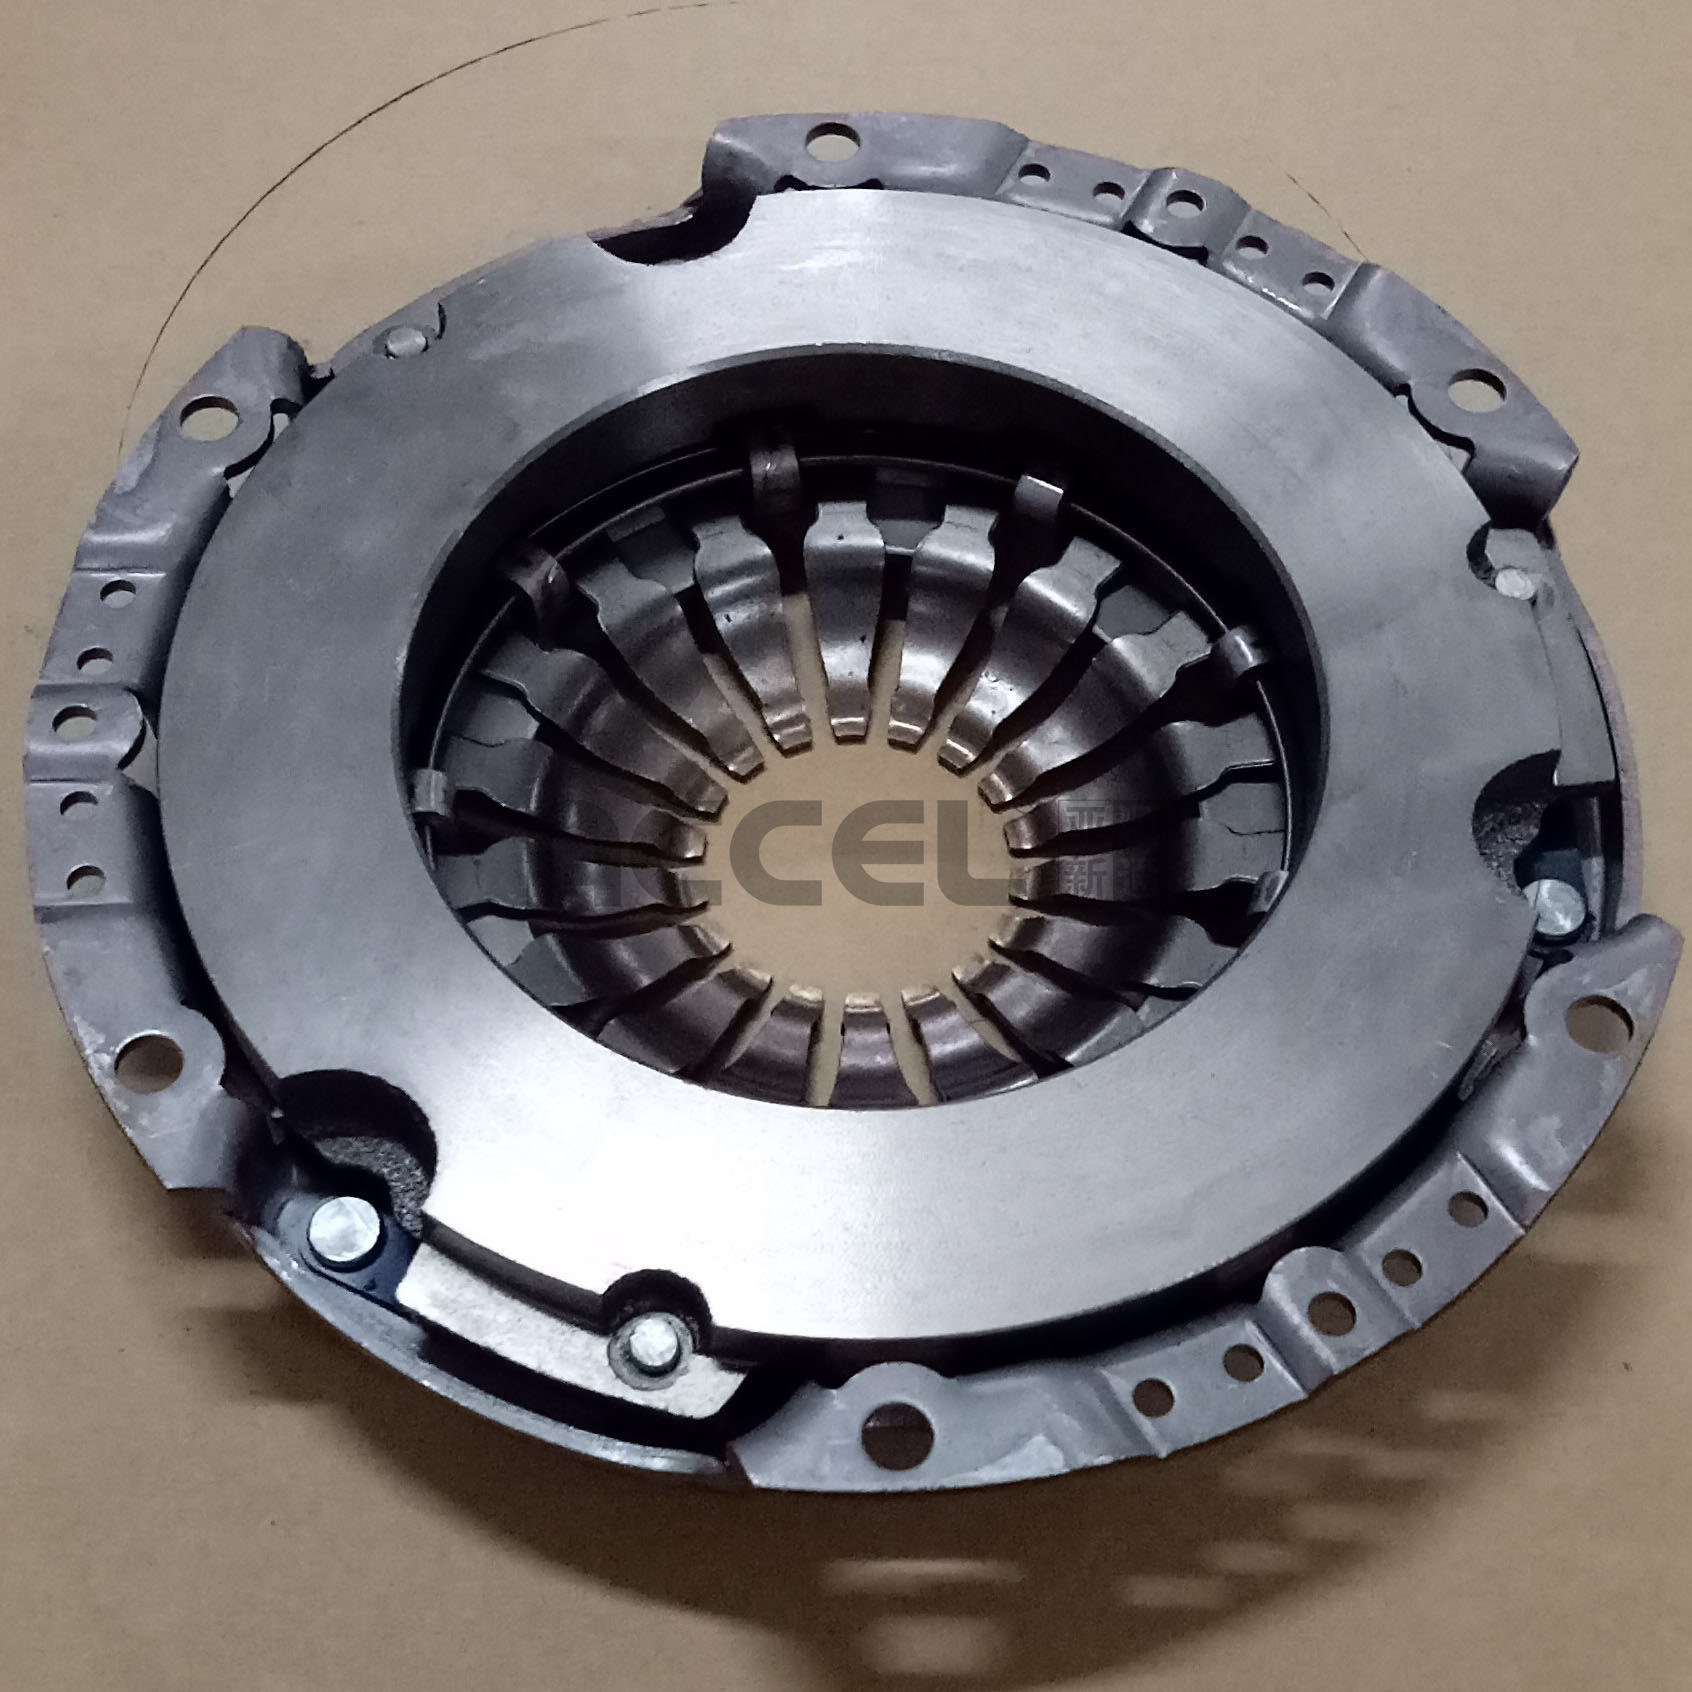 Clutch Cover/OE:/200*132*224/CHG-105/CHINESE VEHICLES/LY574